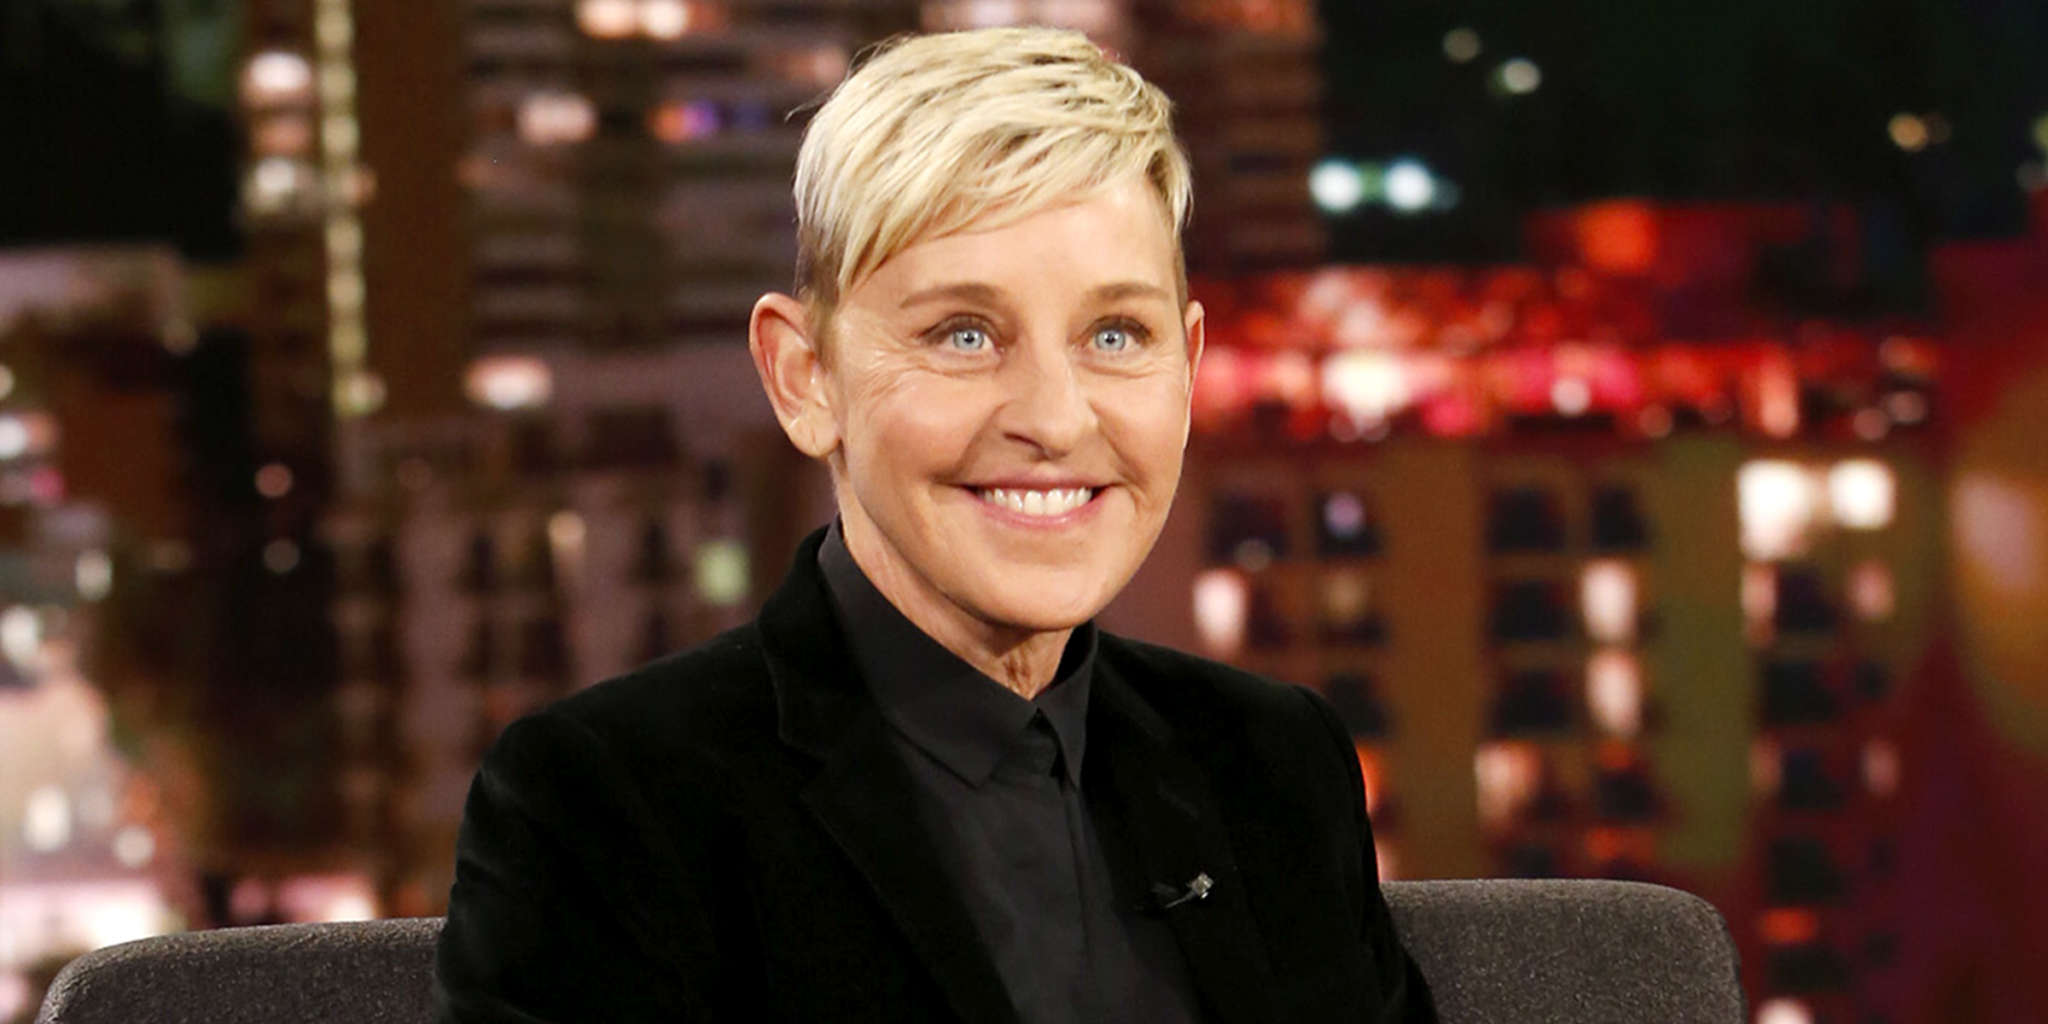 Ellen Degeneres' First Monologue Of The Season Addresses Toxic Workplace Rumors Head On